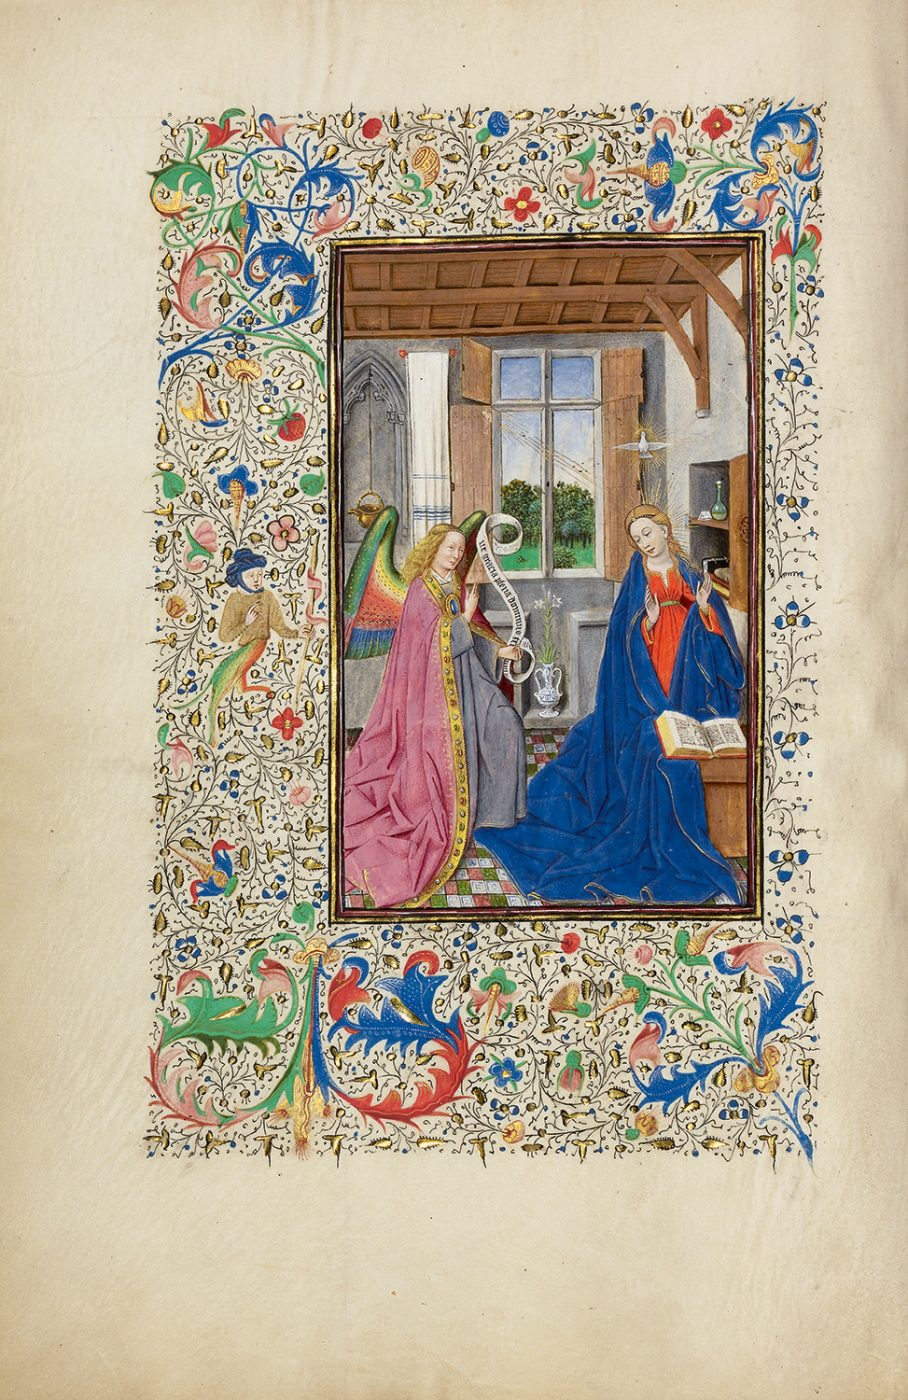 Willem Vrelant, L' Annonciation, des Heures Llangattock, vers 1450 (The J. Paul Getty Museum, Los Angeles)